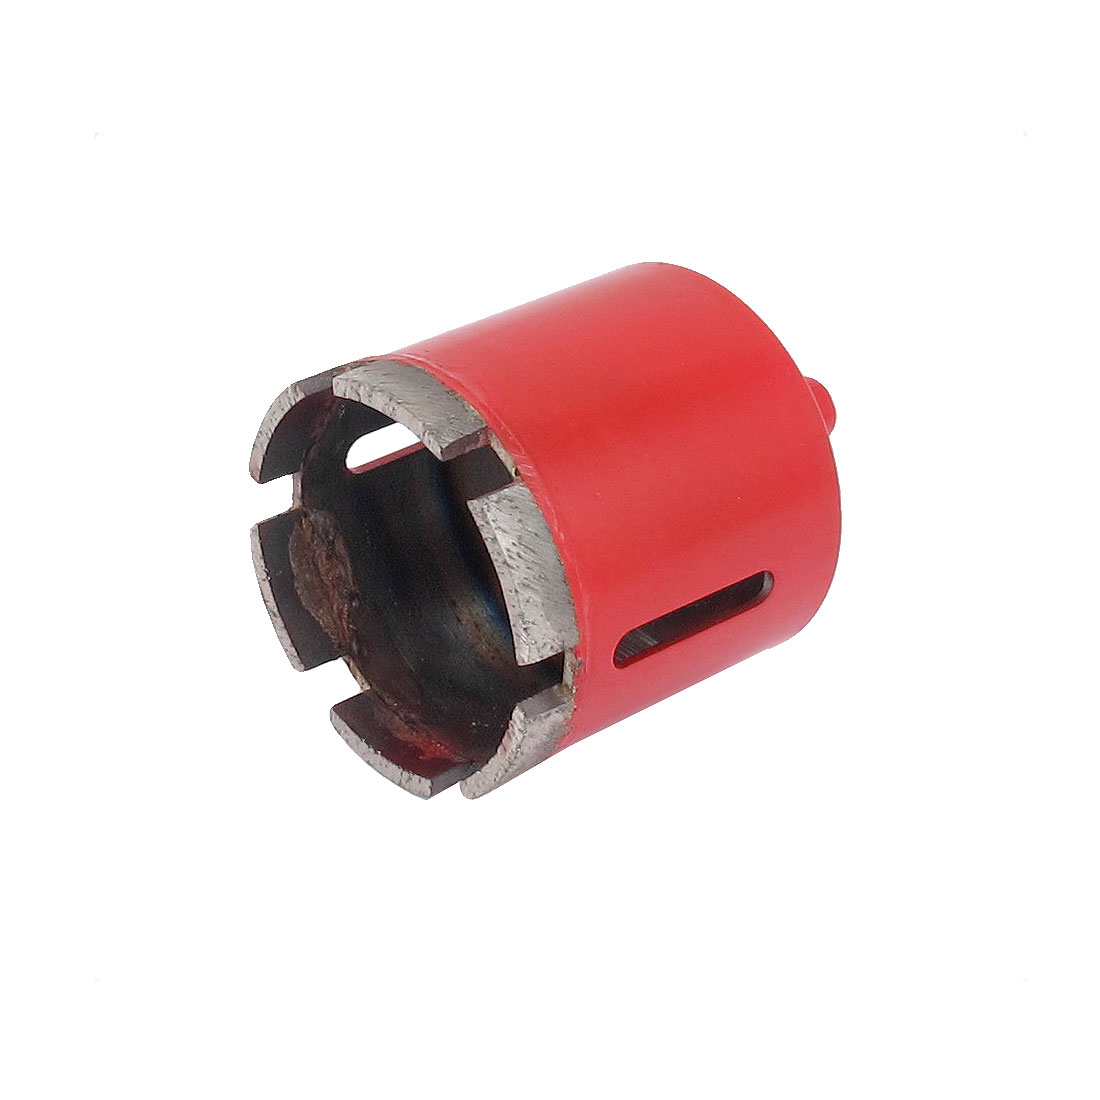 UXCELL Red Housing 10Mm Shank 60Mm Dia Granite Marble Wet Dry Diamond Hole Saw Cutter<br><br>Aliexpress